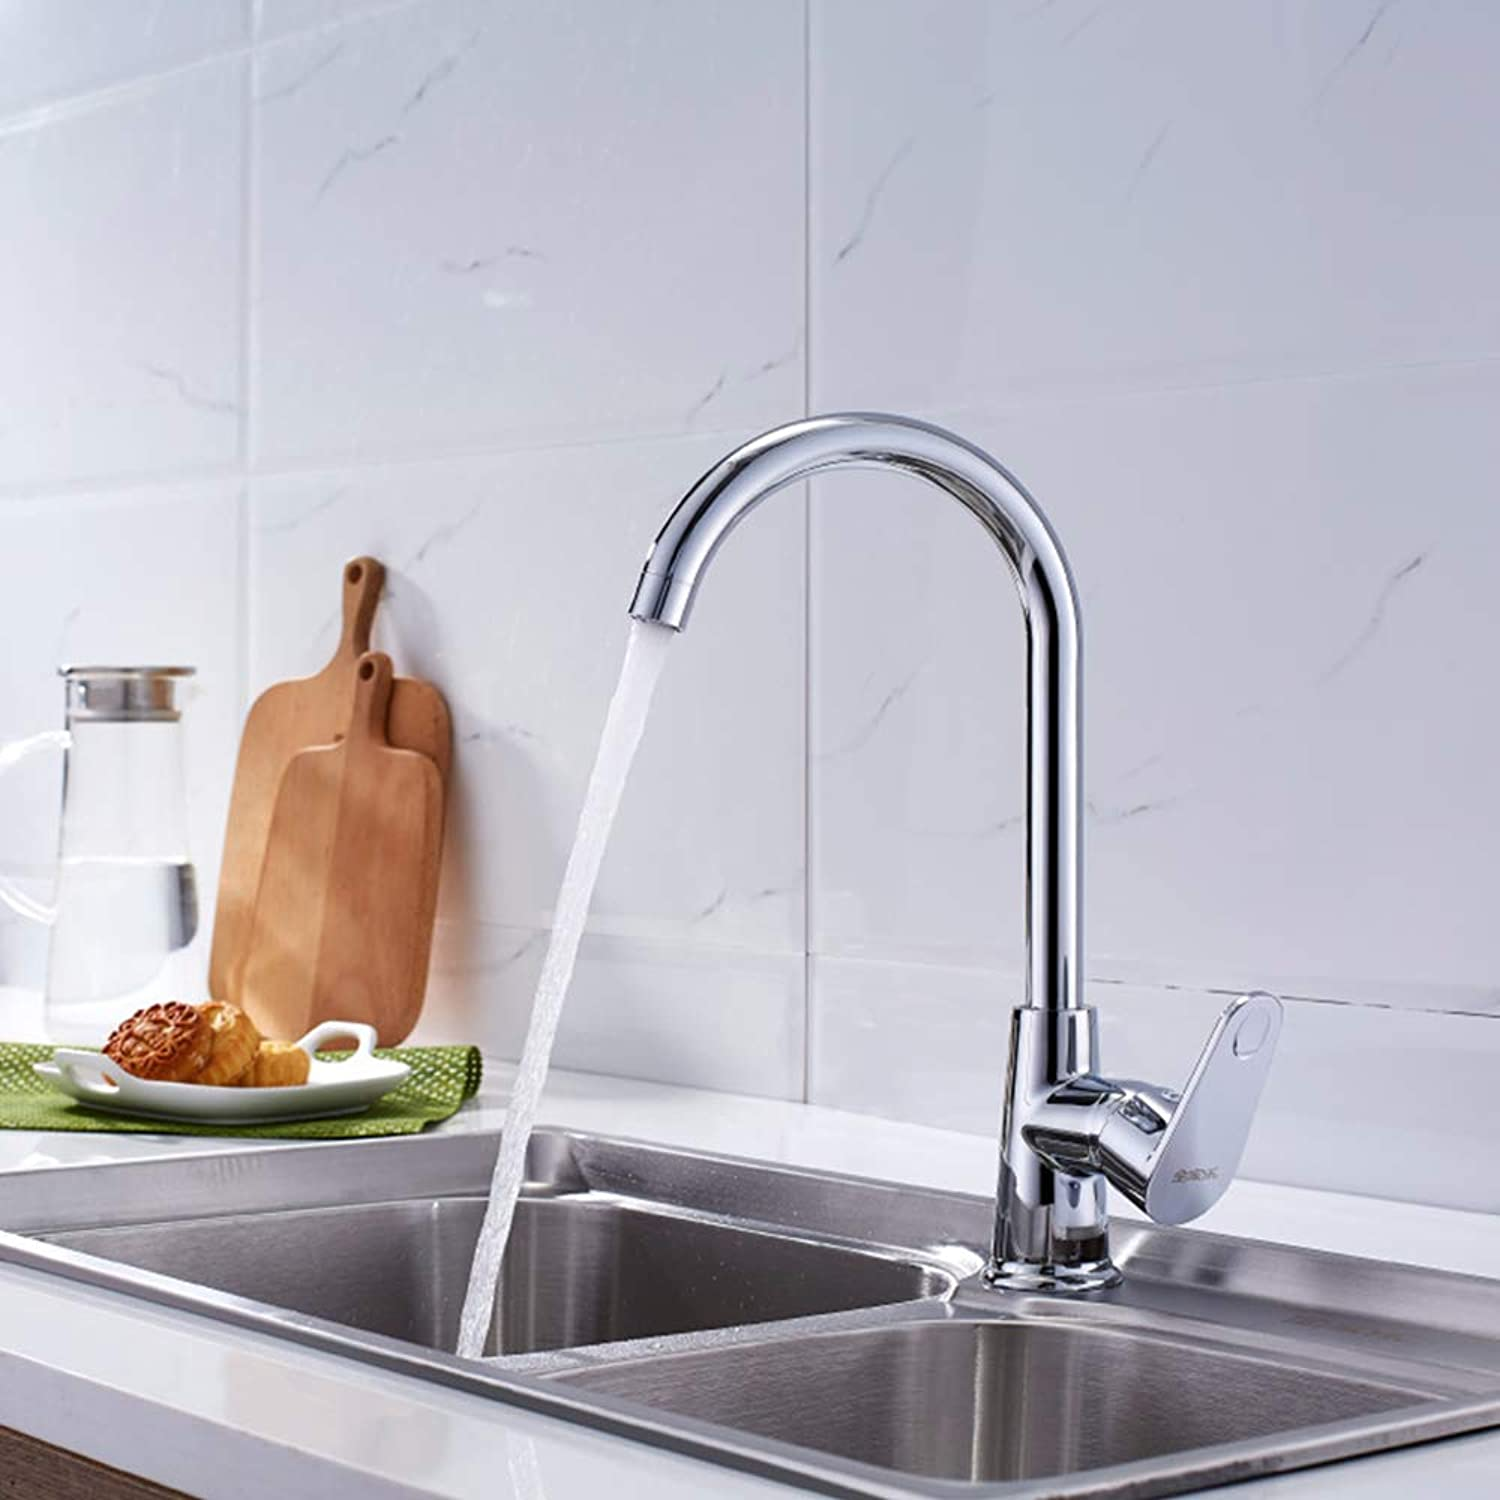 Zhanghaidong Single Lever Swivel Spout Stainless Steel Kitchen Sink Mixer Tap Pull Down Mono Kitchen Sink Taps redating Multi-Function Hot And Cold Water Tap